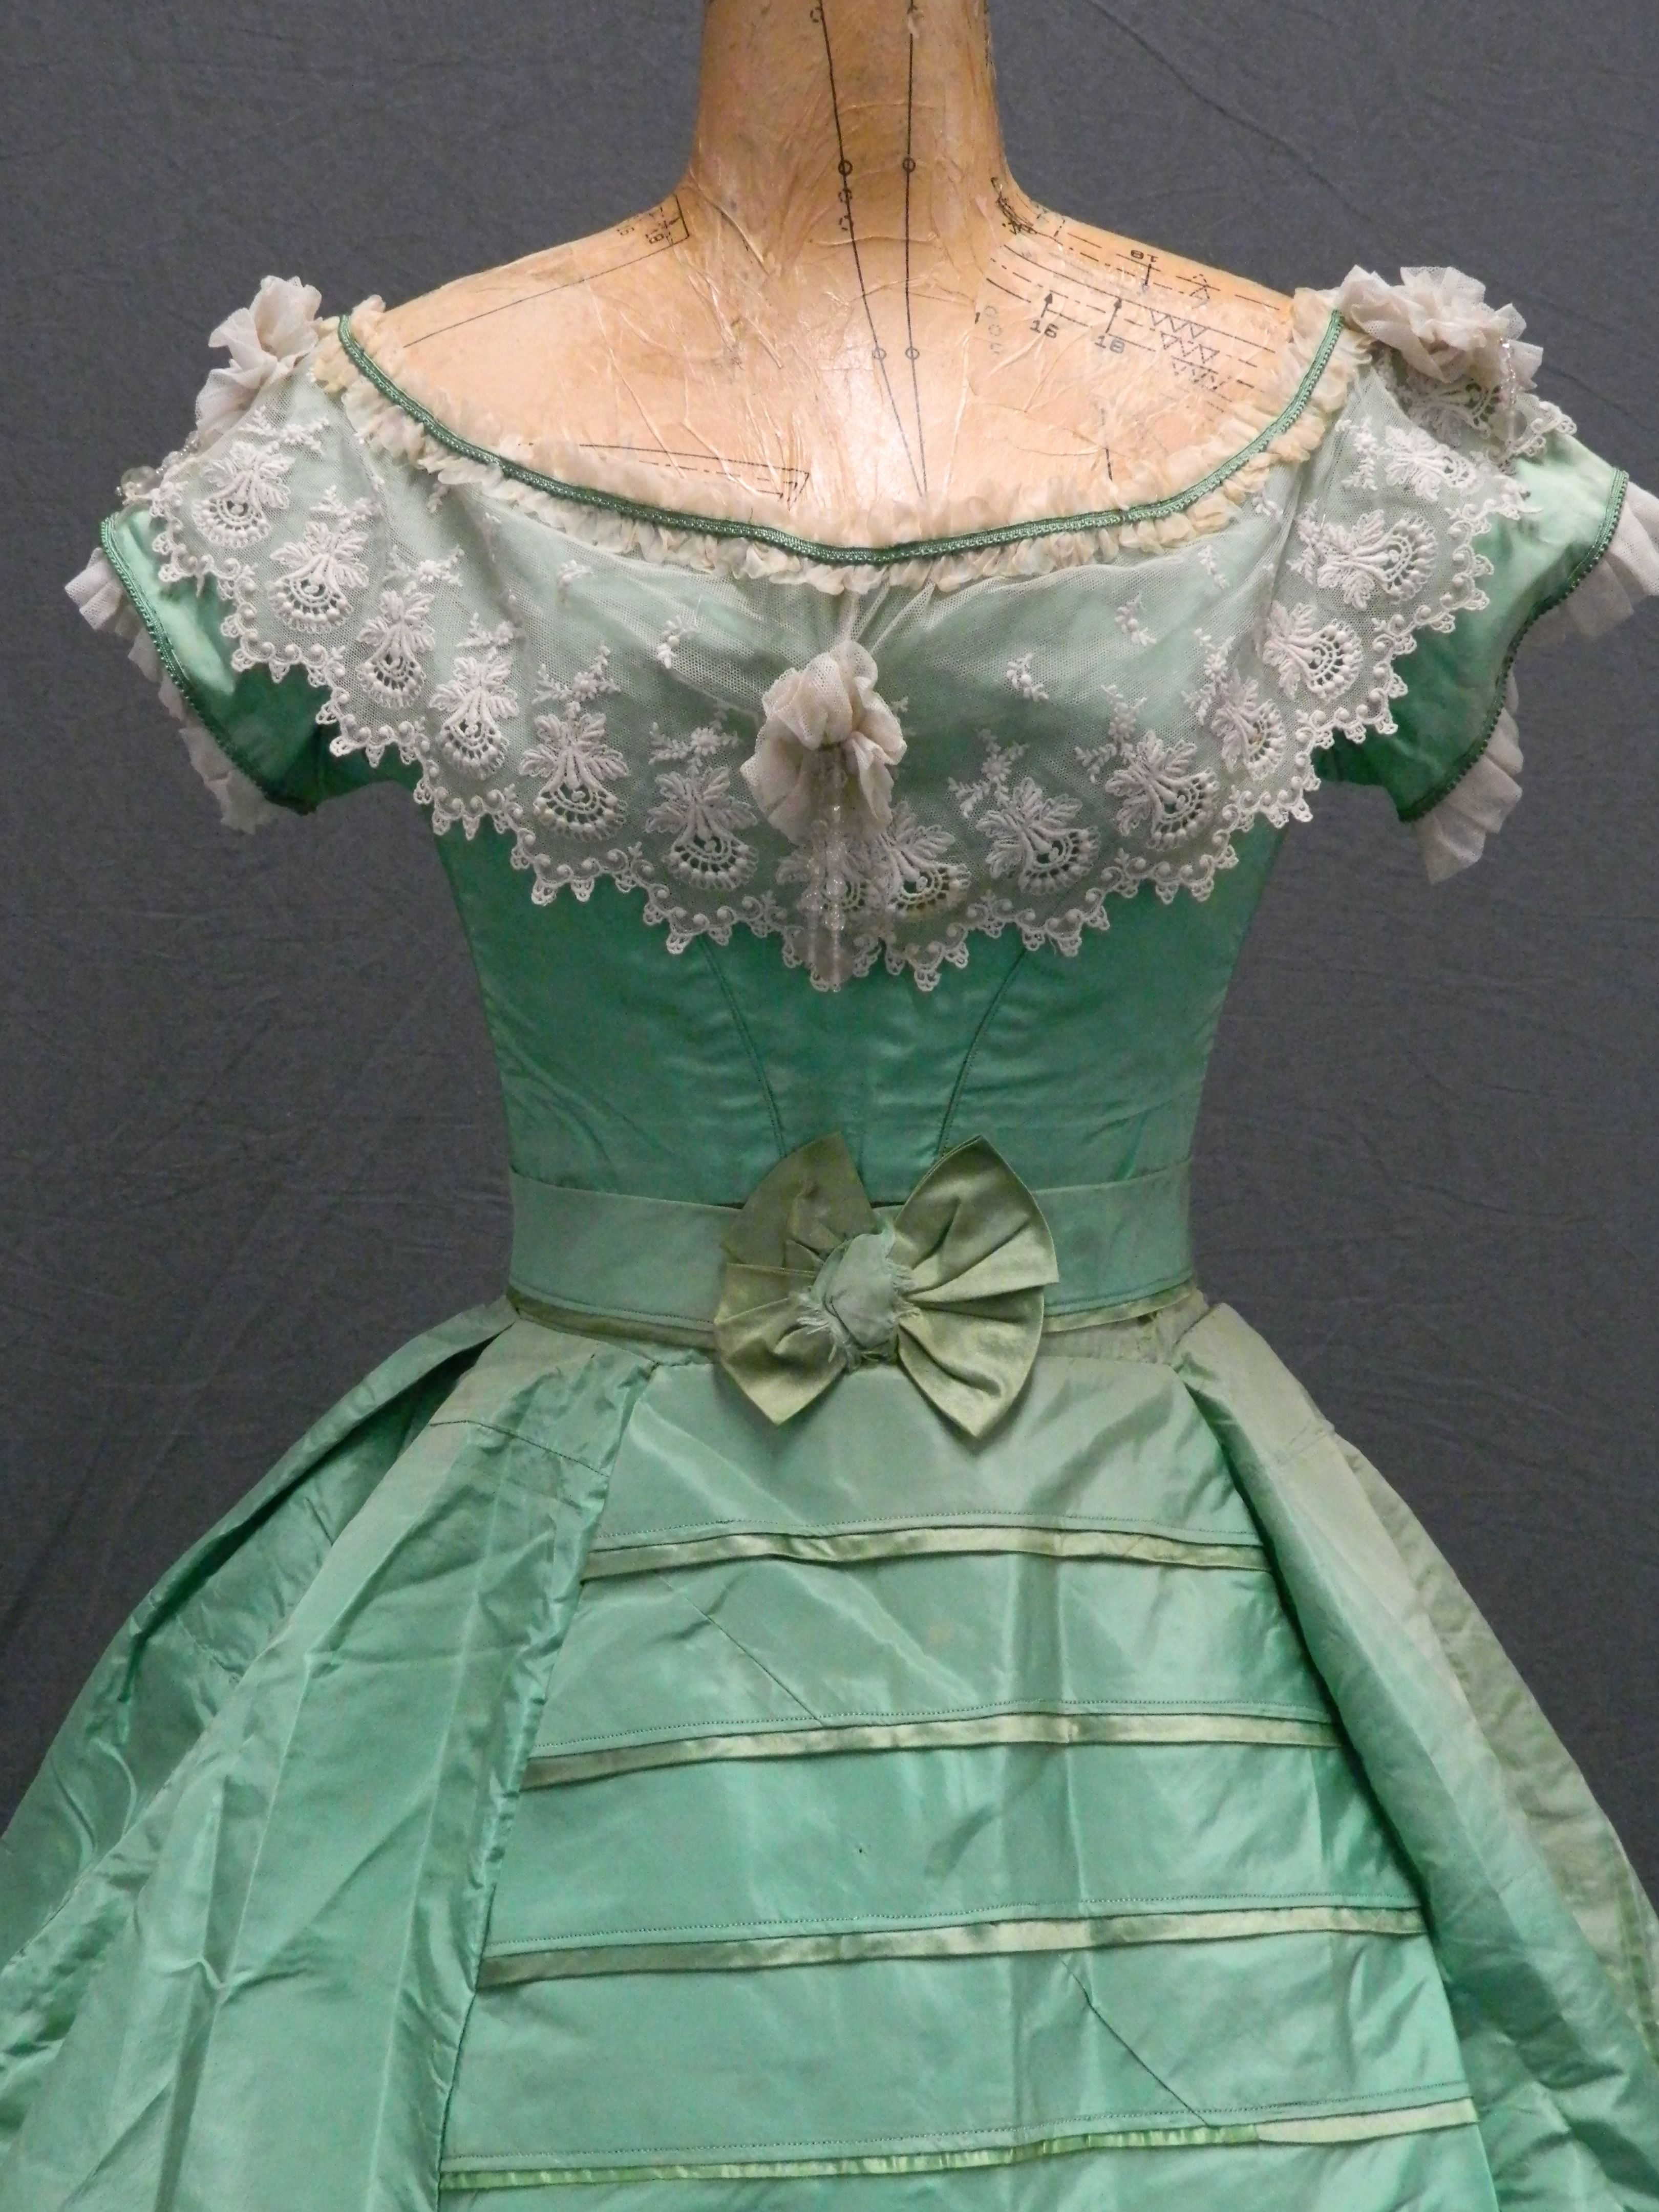 An 'arsenic green', mid 19th century dress, Eleanor Keene. (No source - I suspect ebay. C. 1865 from what I can see.)